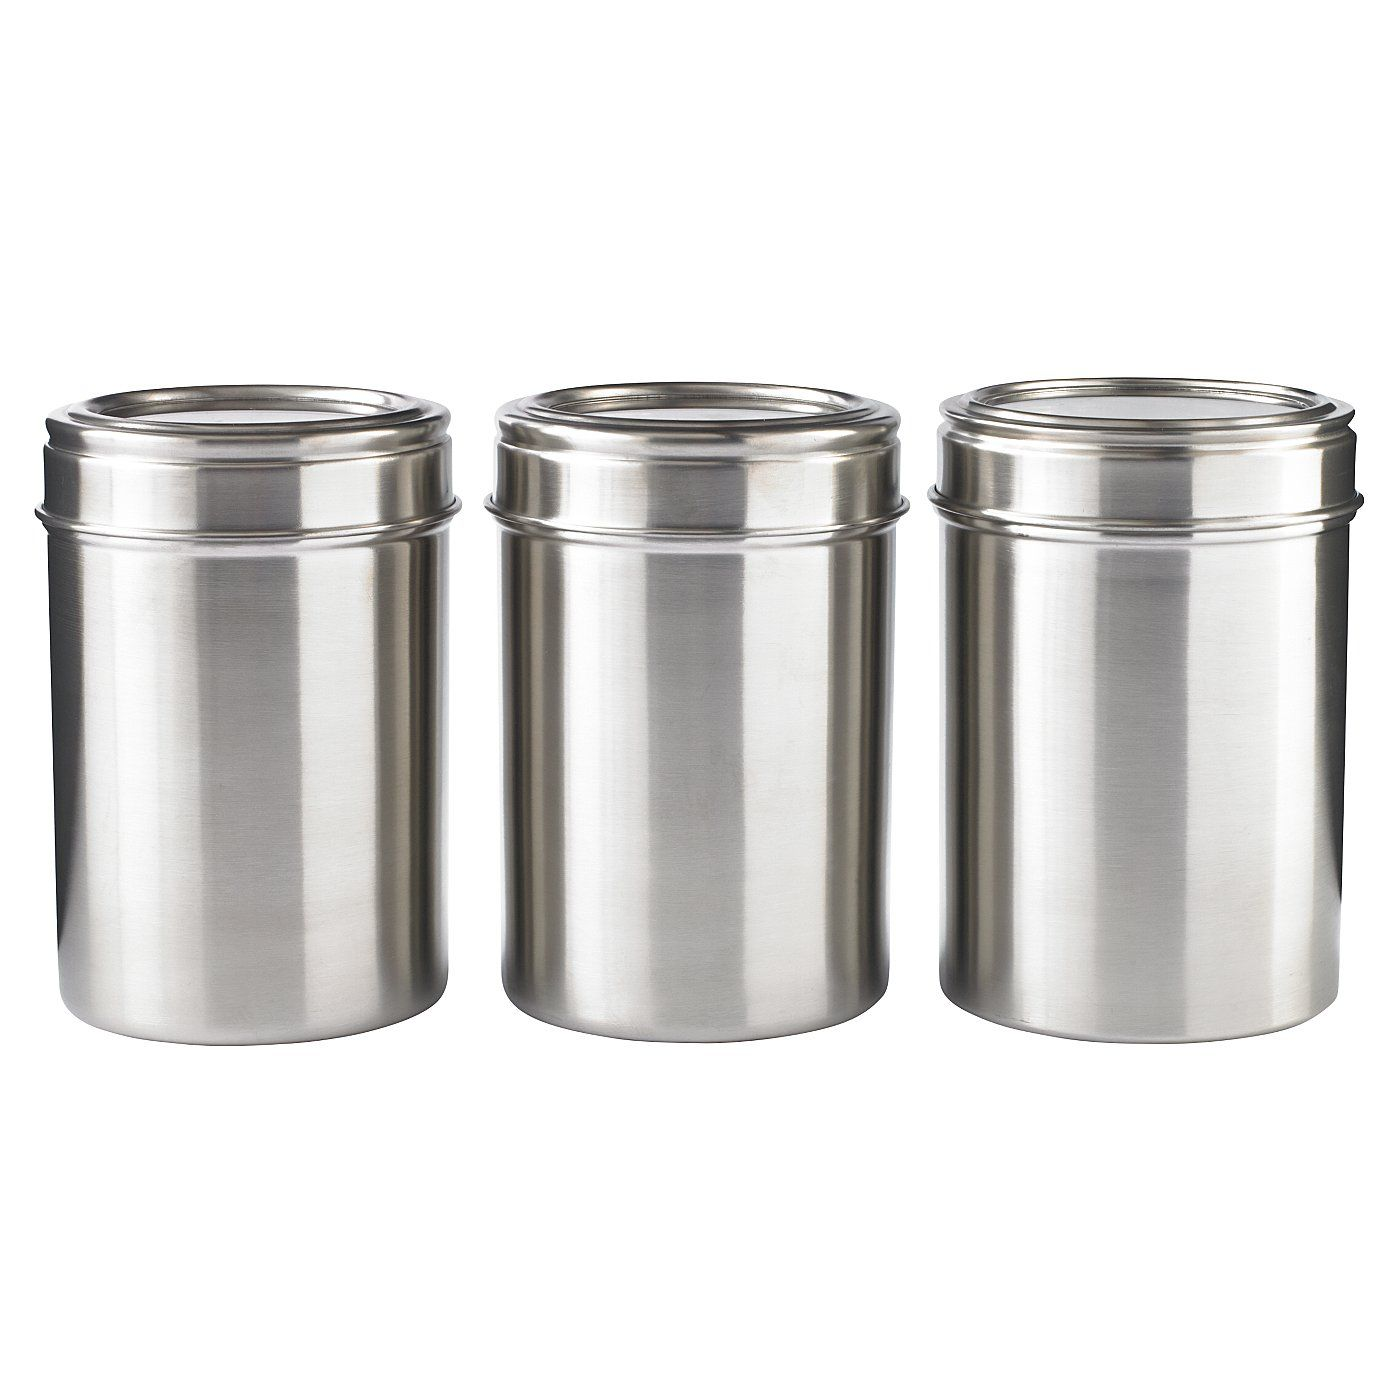 Buy George Home Pack Of Three Stainless Steel Canisters From Our